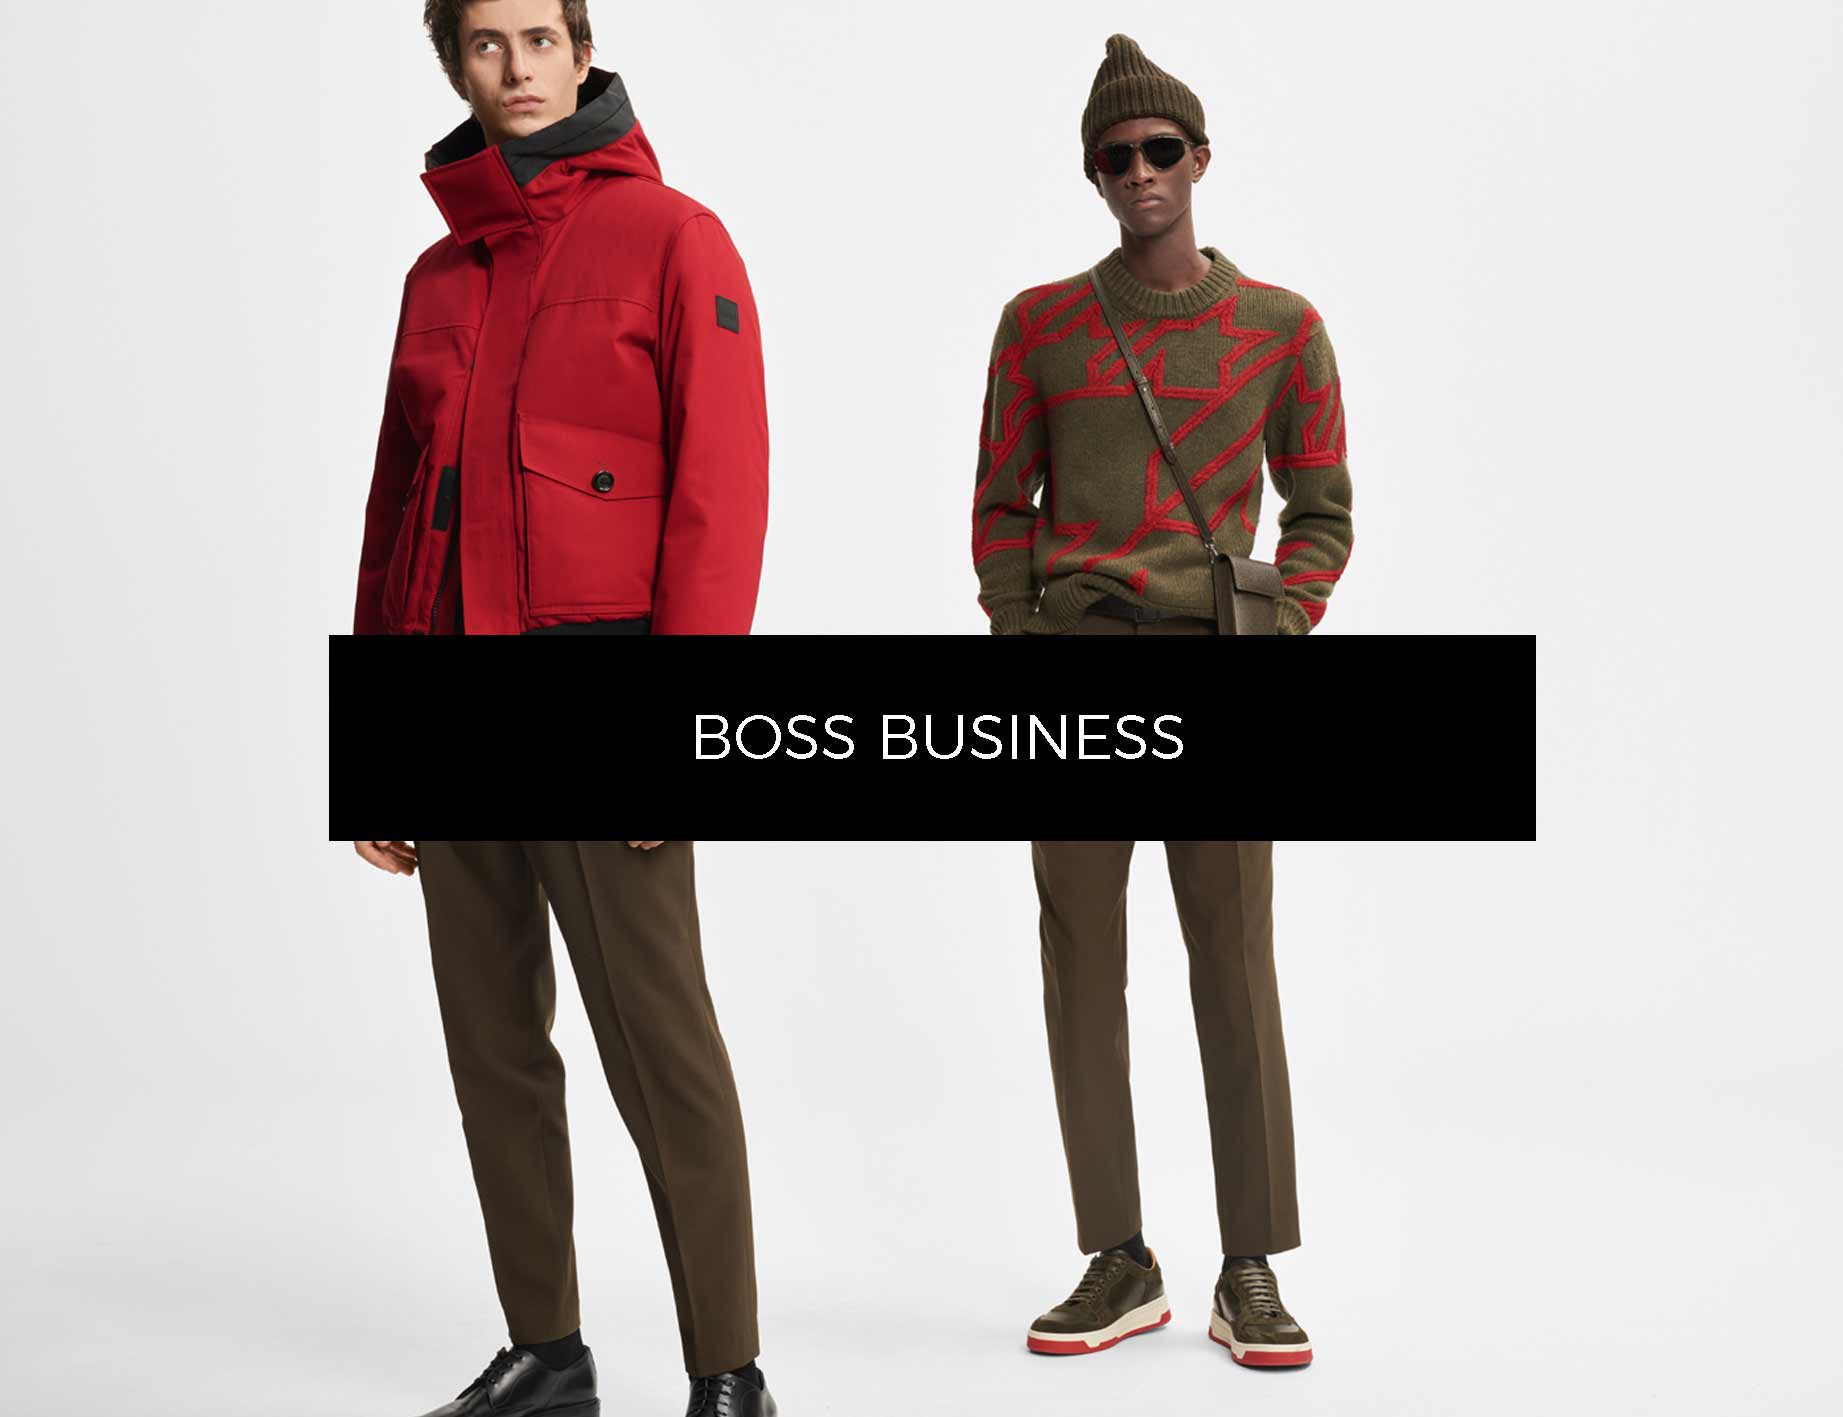 Hugo Boss Business